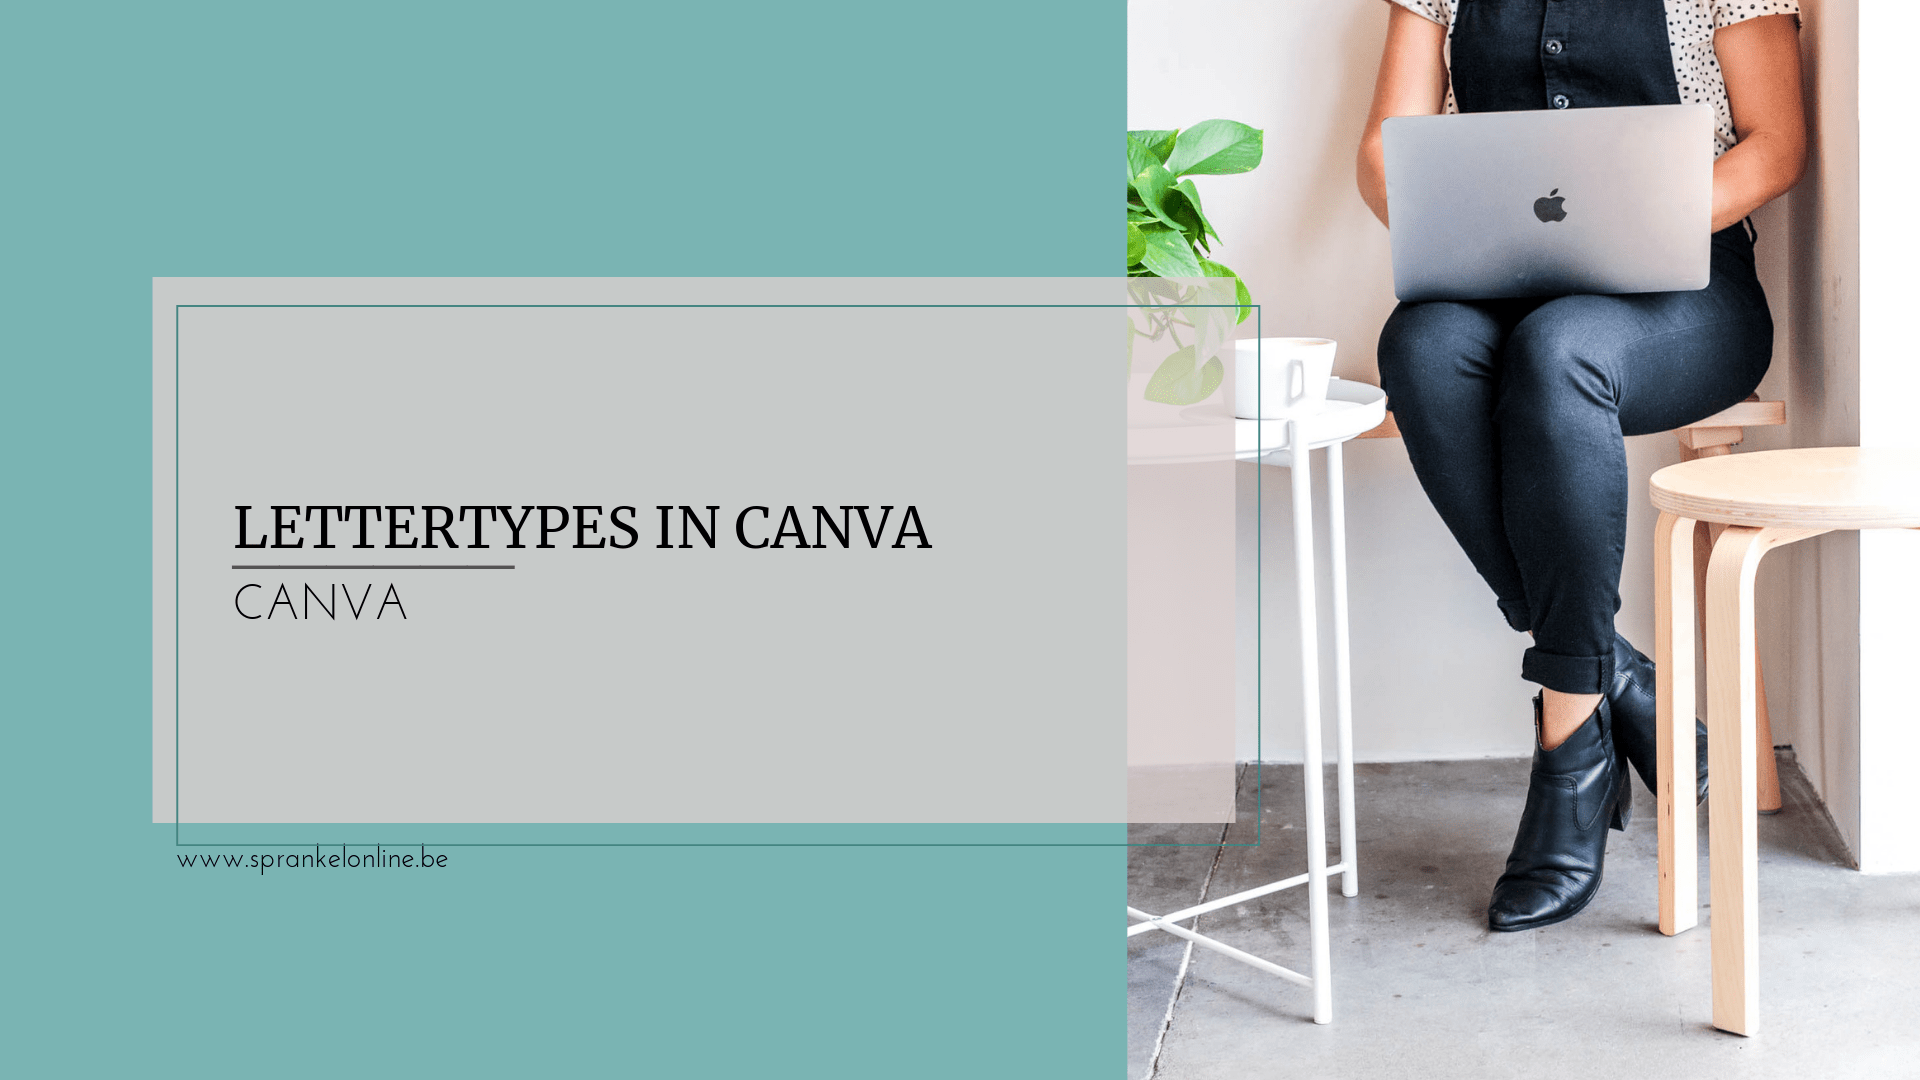 Lettertypes in Canva Sprankel Online